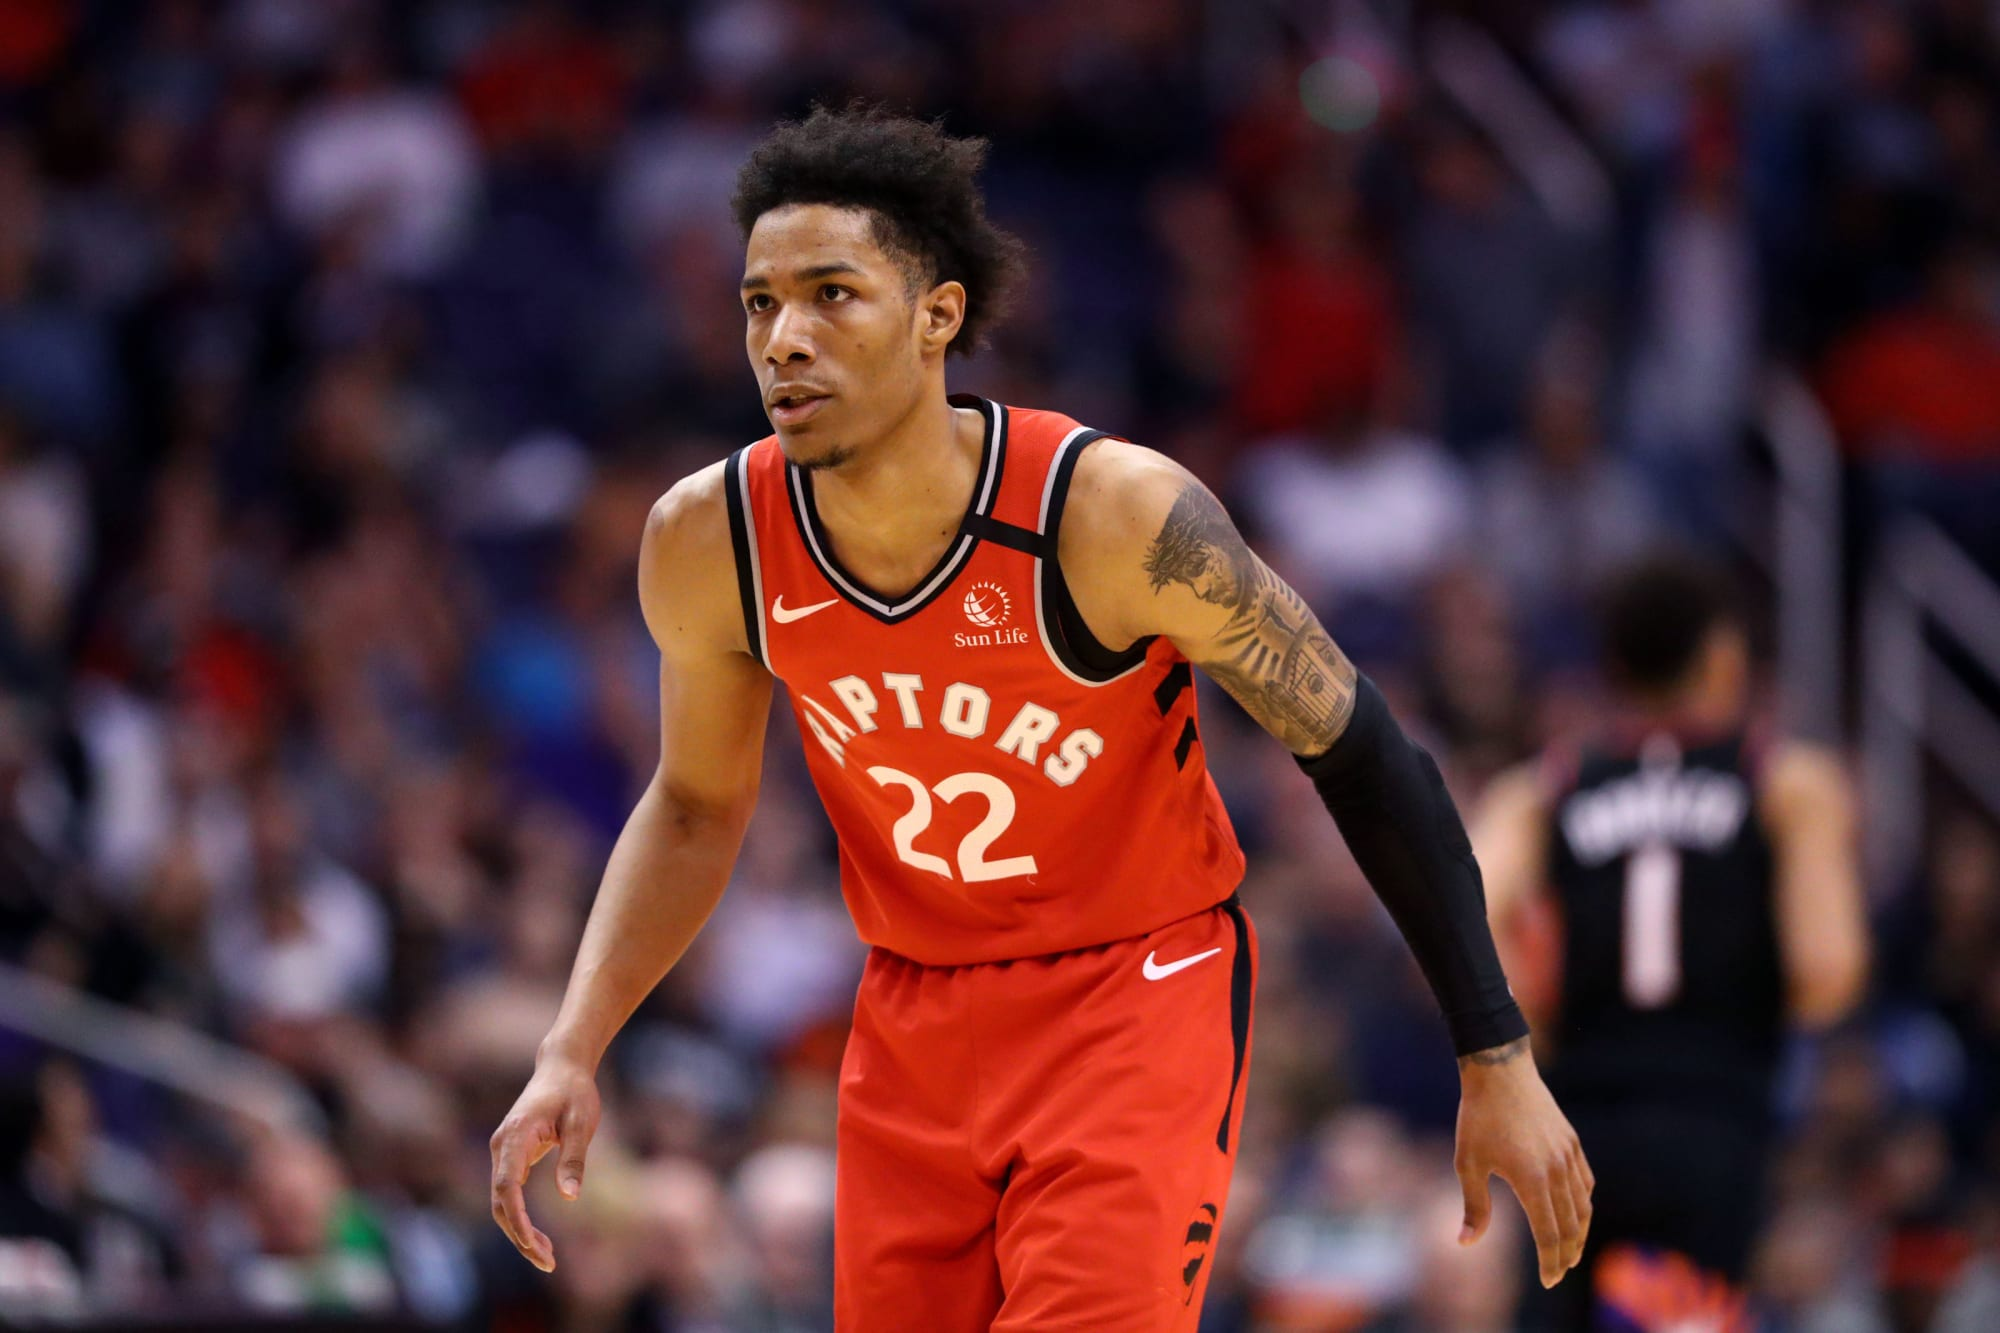 Raptors: What can we expect from Patrick McCaw when he returns?